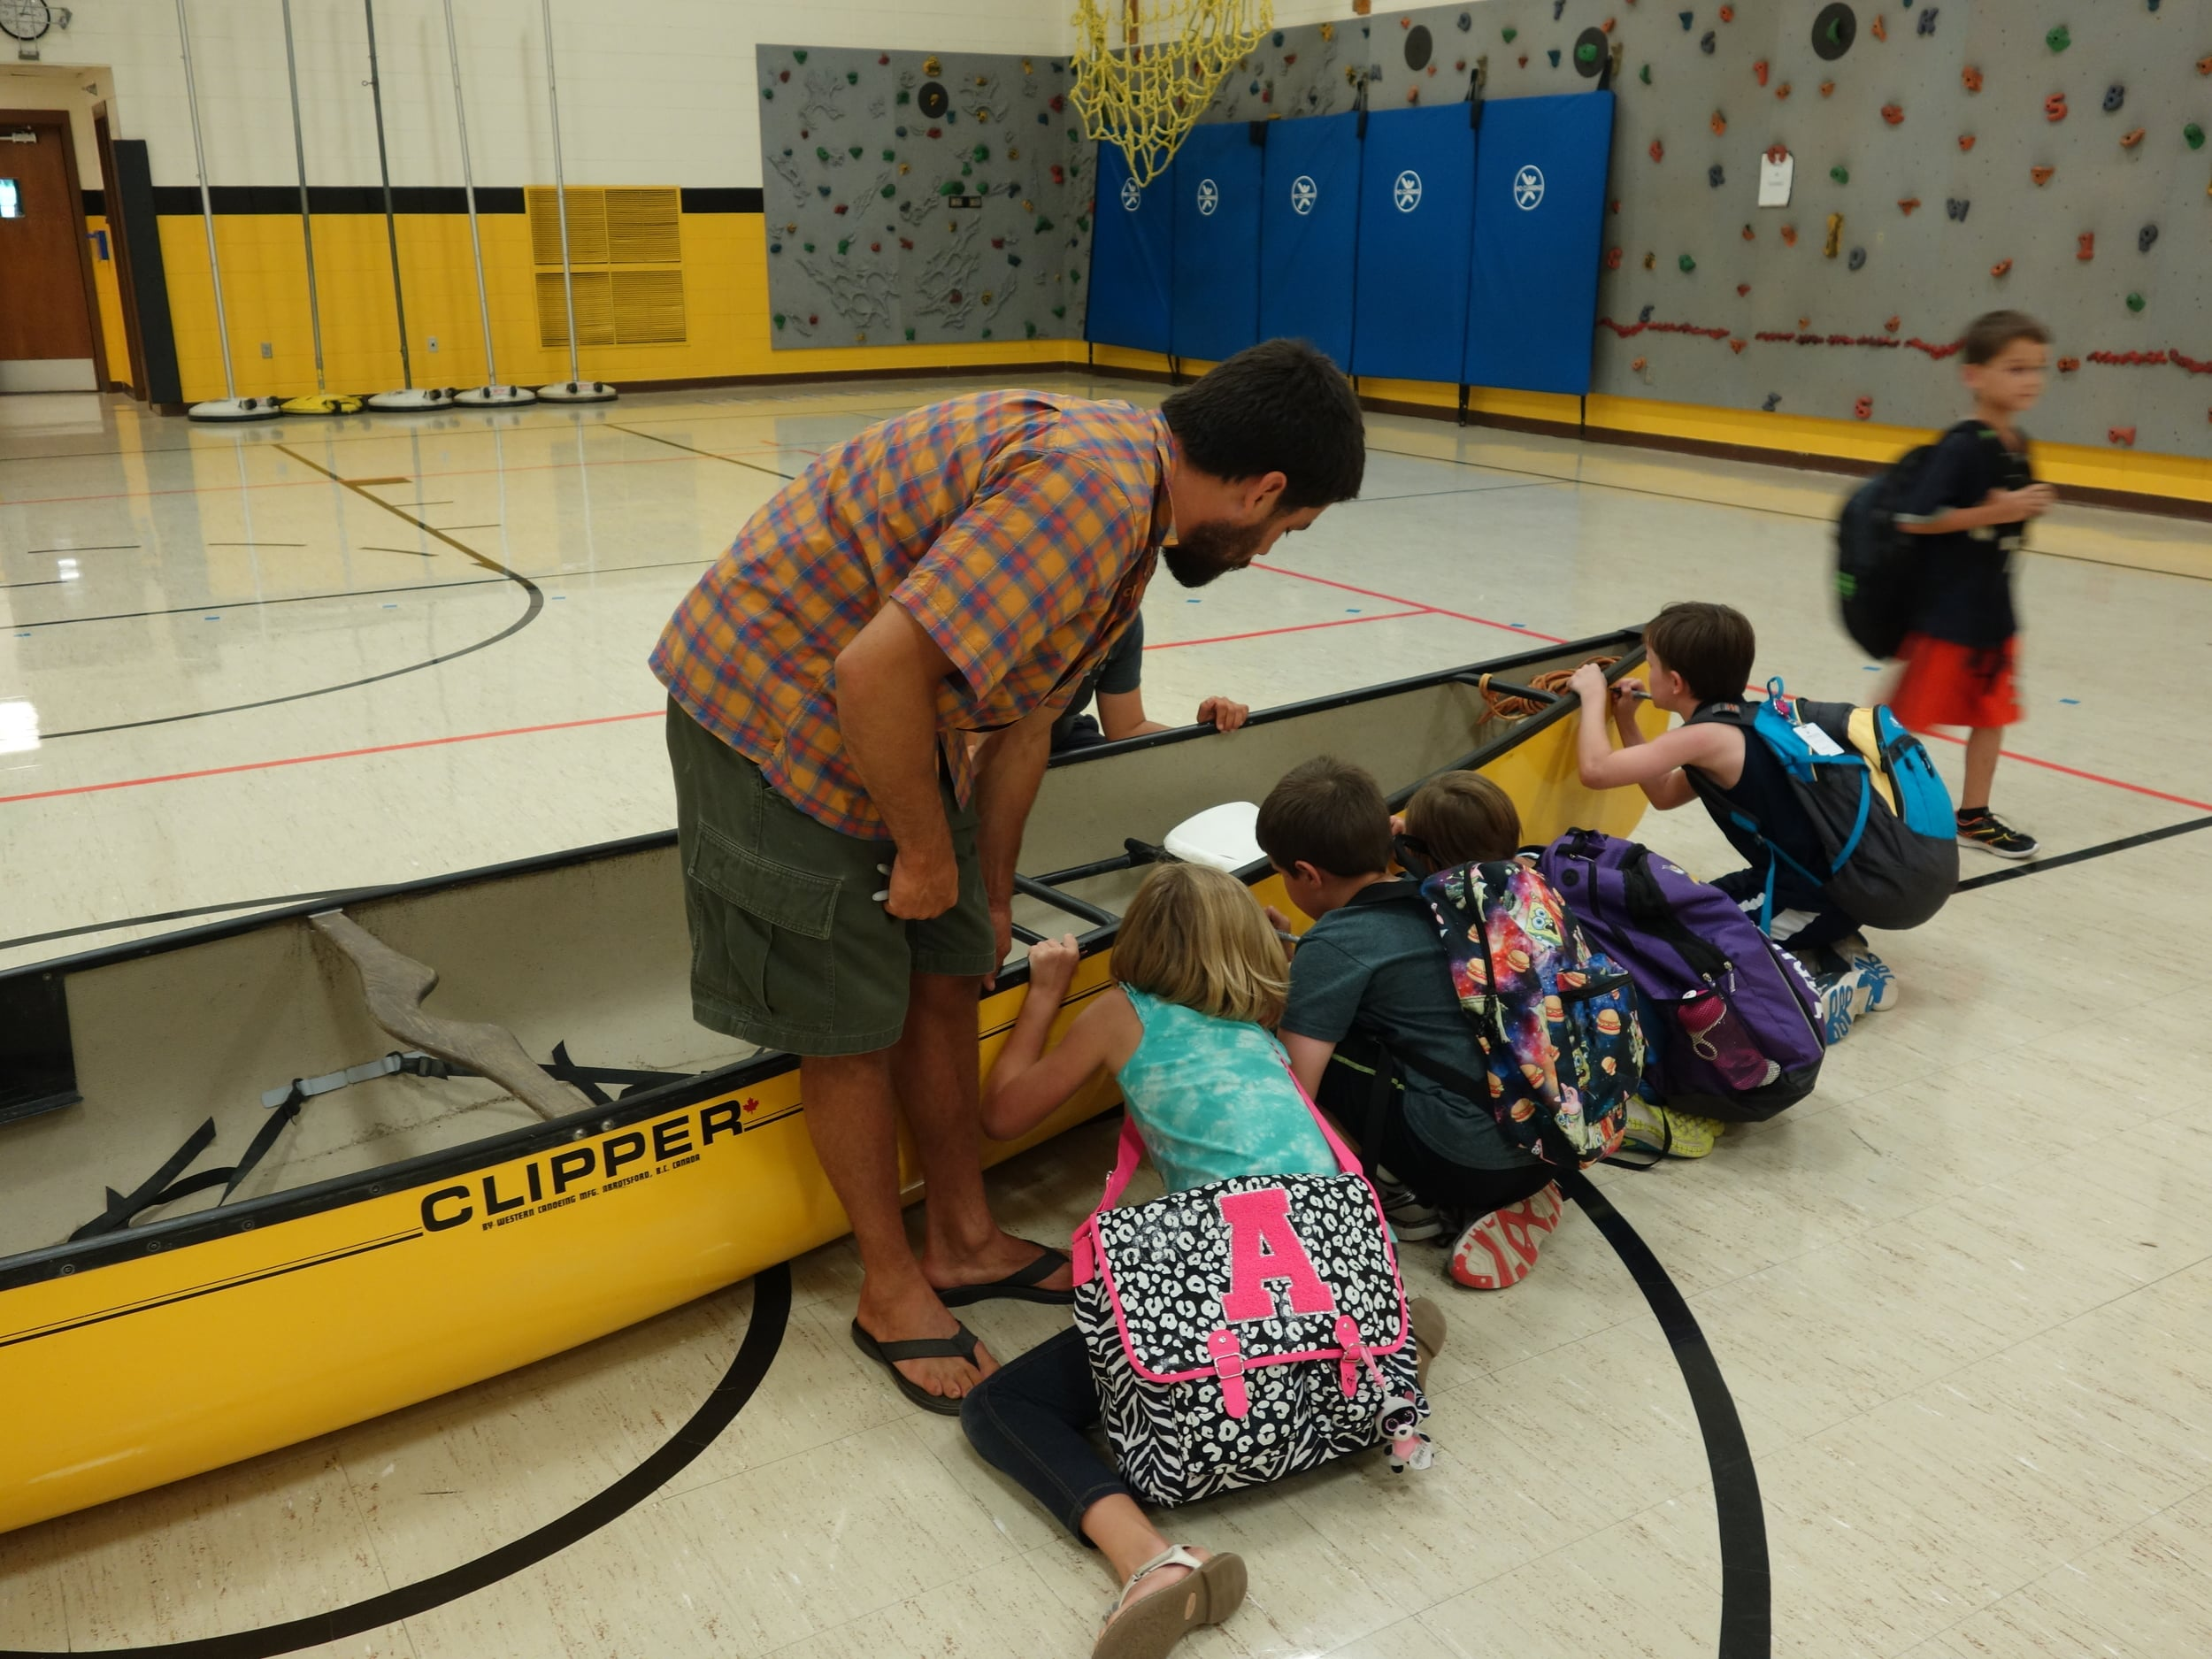 Every presentation varied a bit depending on the needs of the school. Here grades that didn't go on a field trip were able to pledge their support to the river by signing our canoe after a presentation.